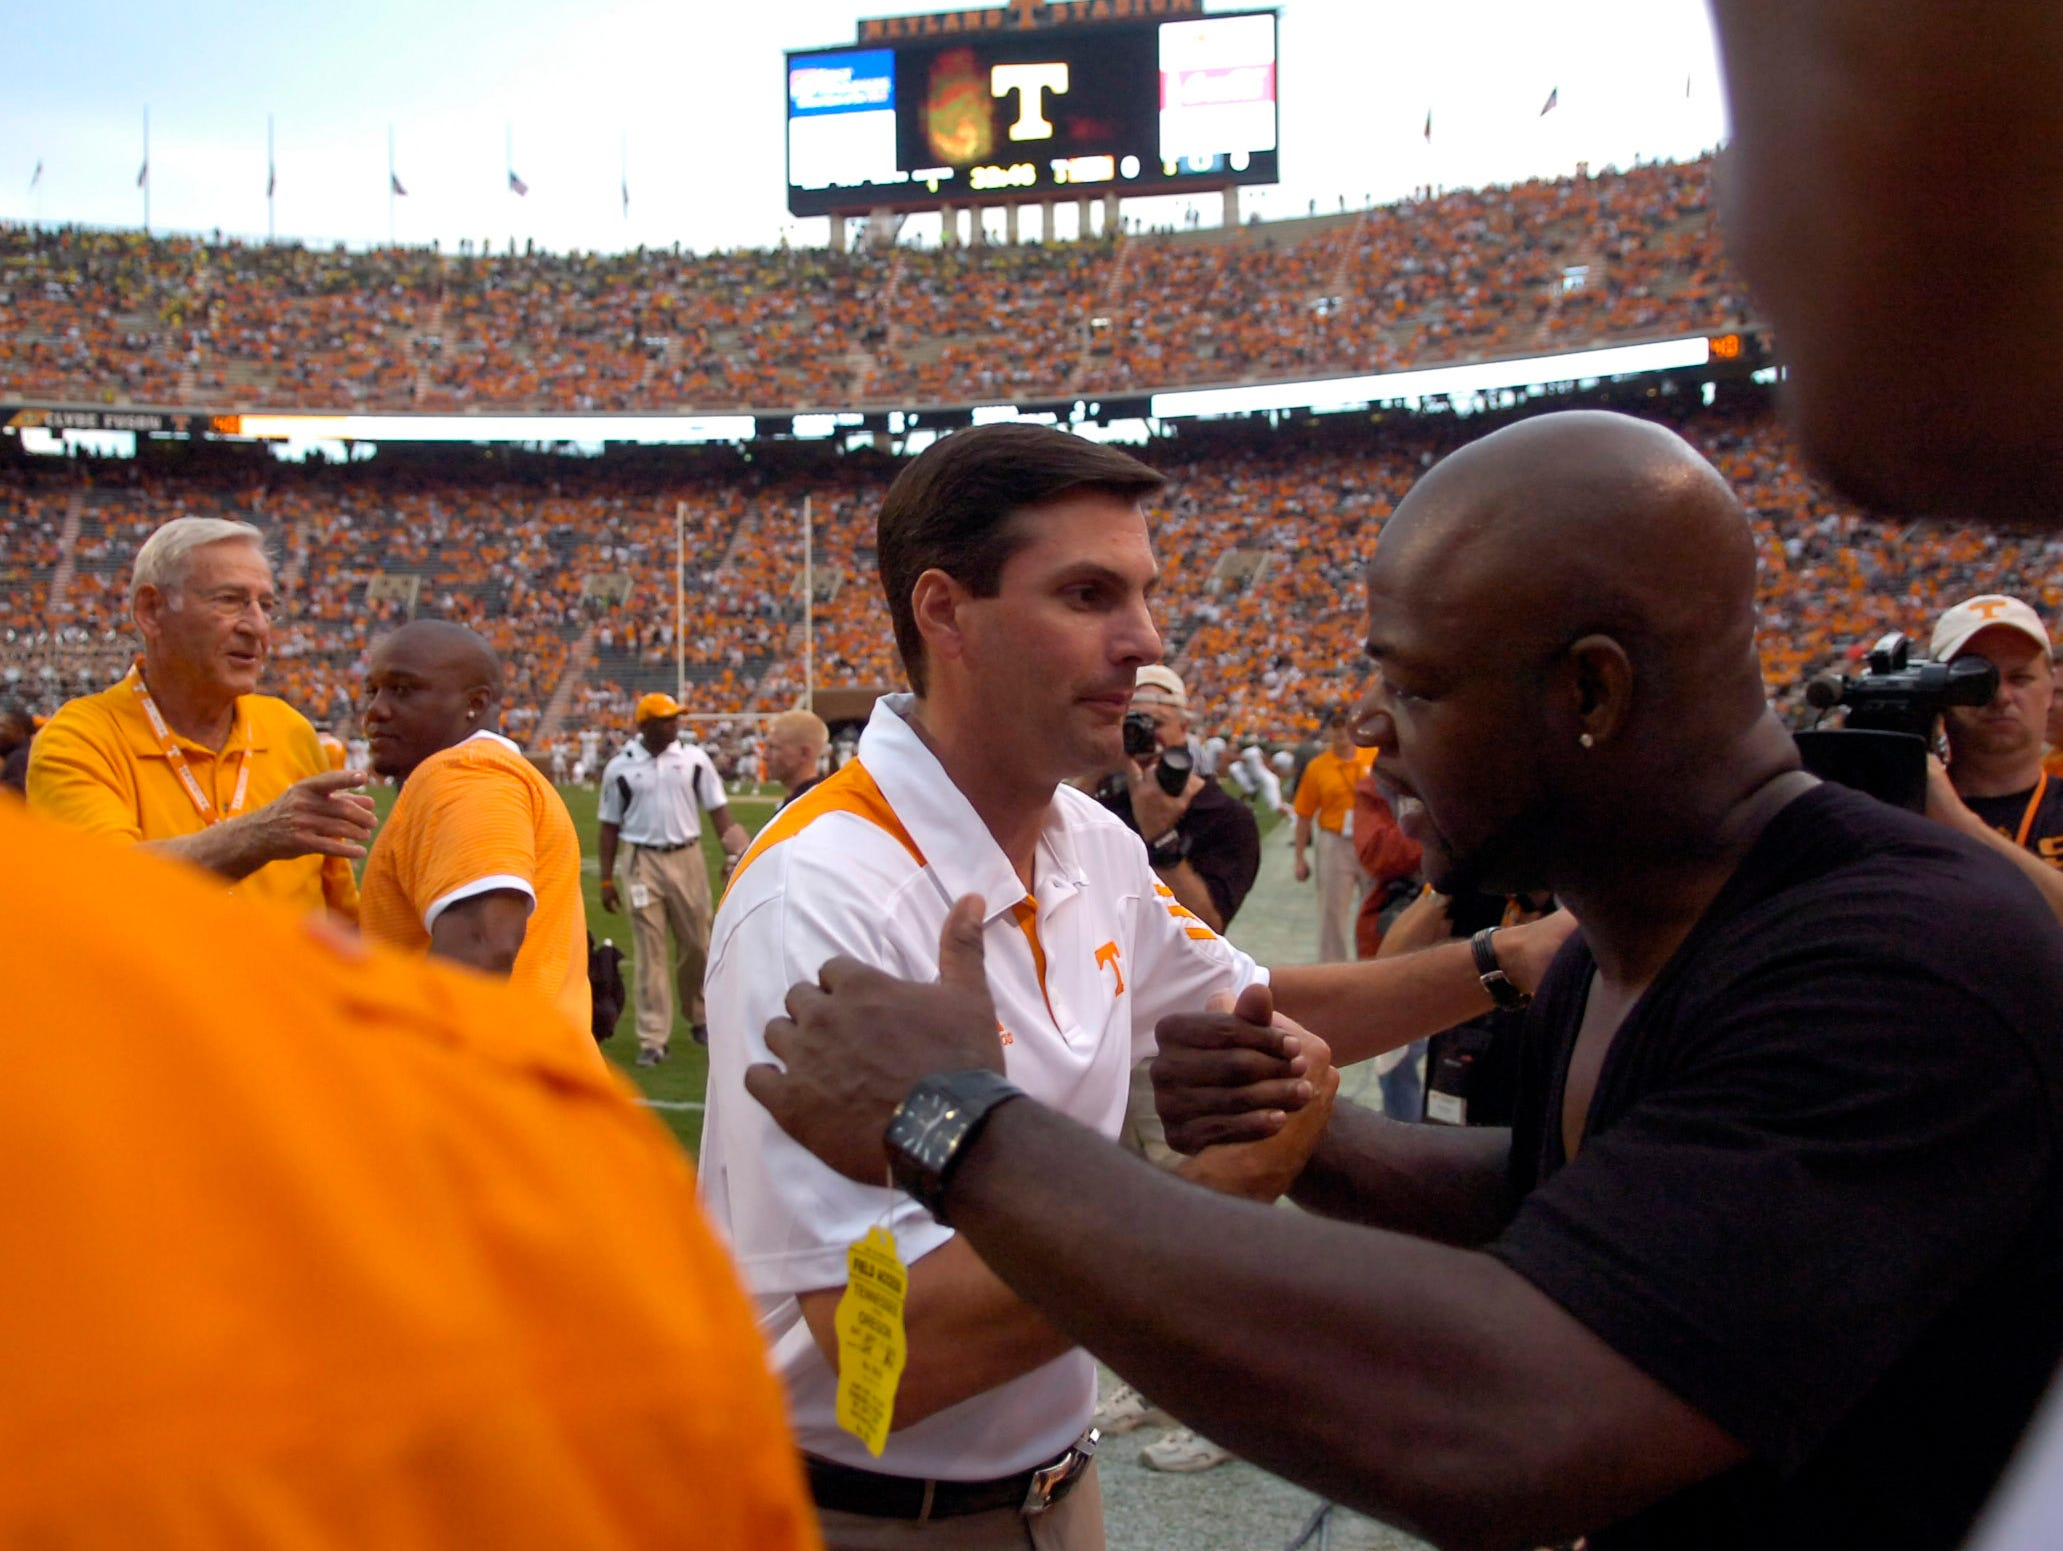 Tennessee head coach Derek Dooley greets former player Al Wilson before the game against Oregon at Neyland Stadium on Saturday, Sept. 11, 2010.